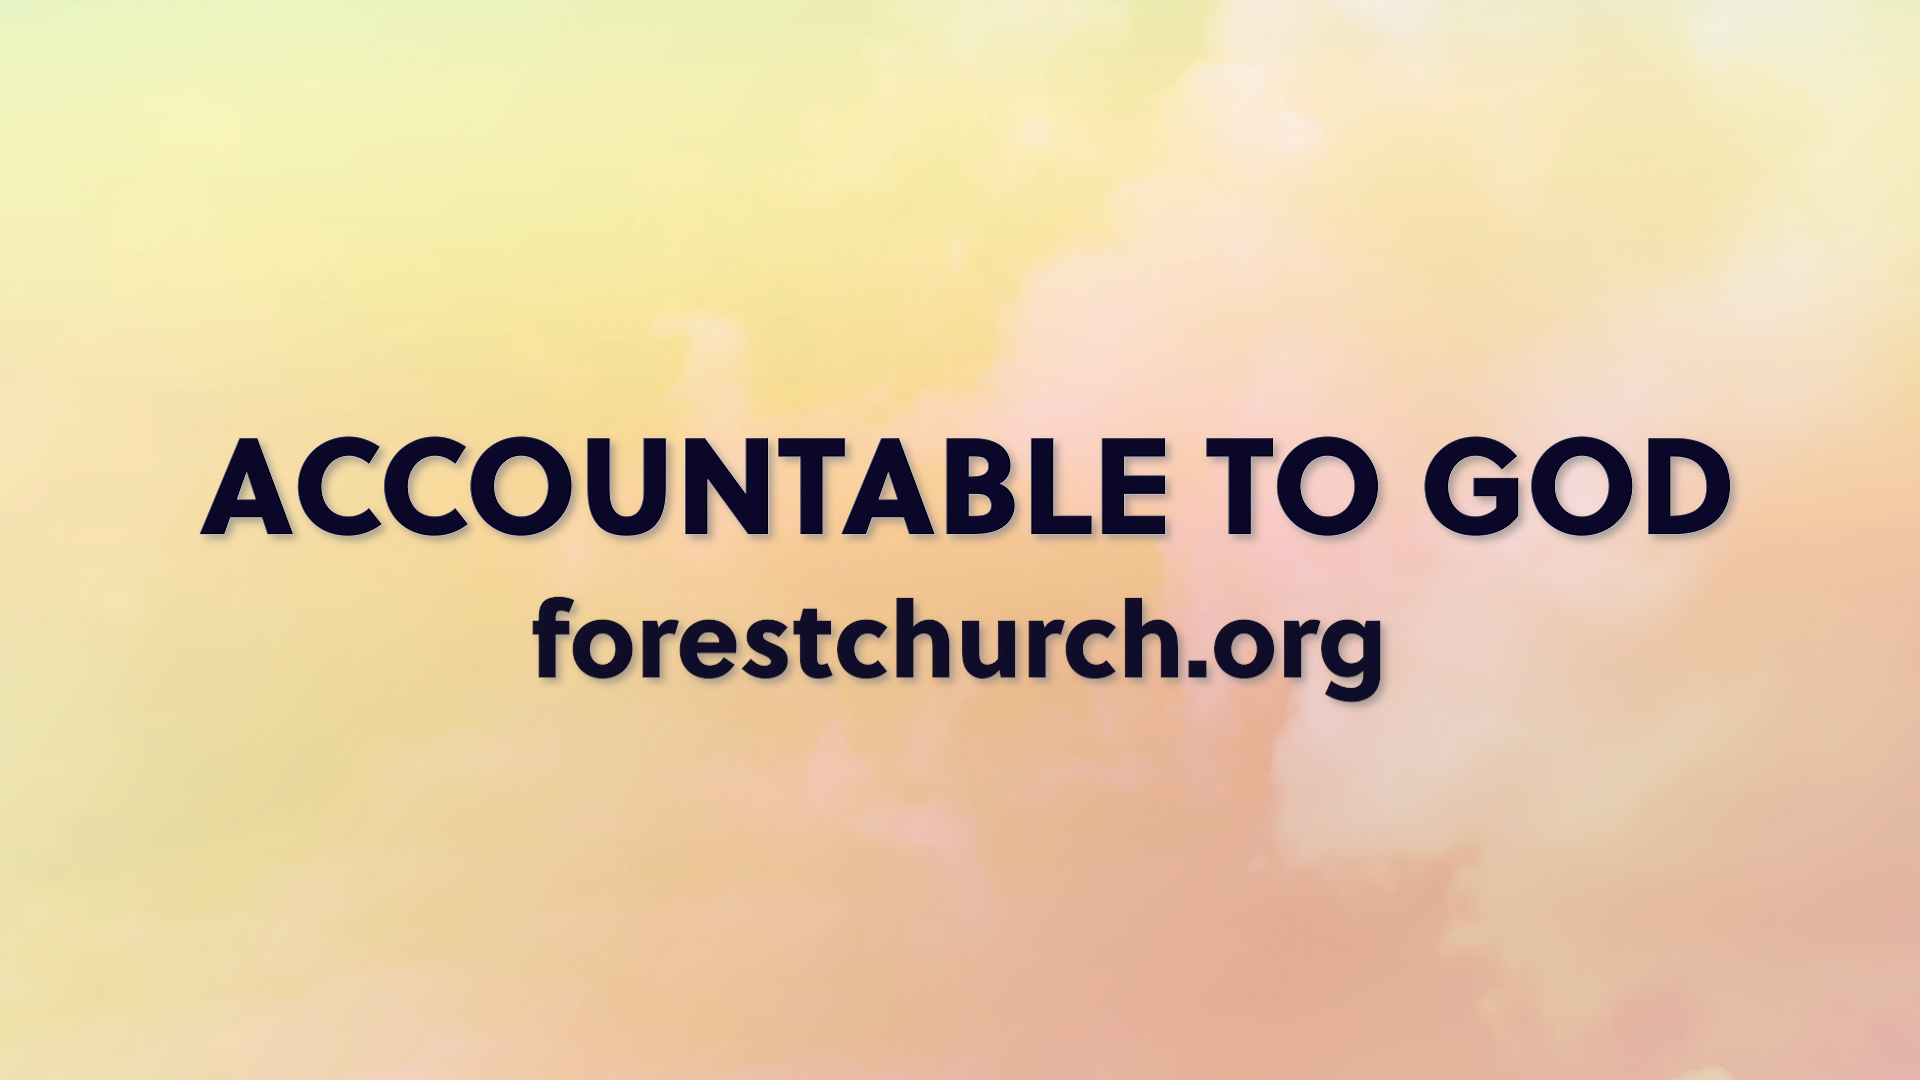 Accountable to God